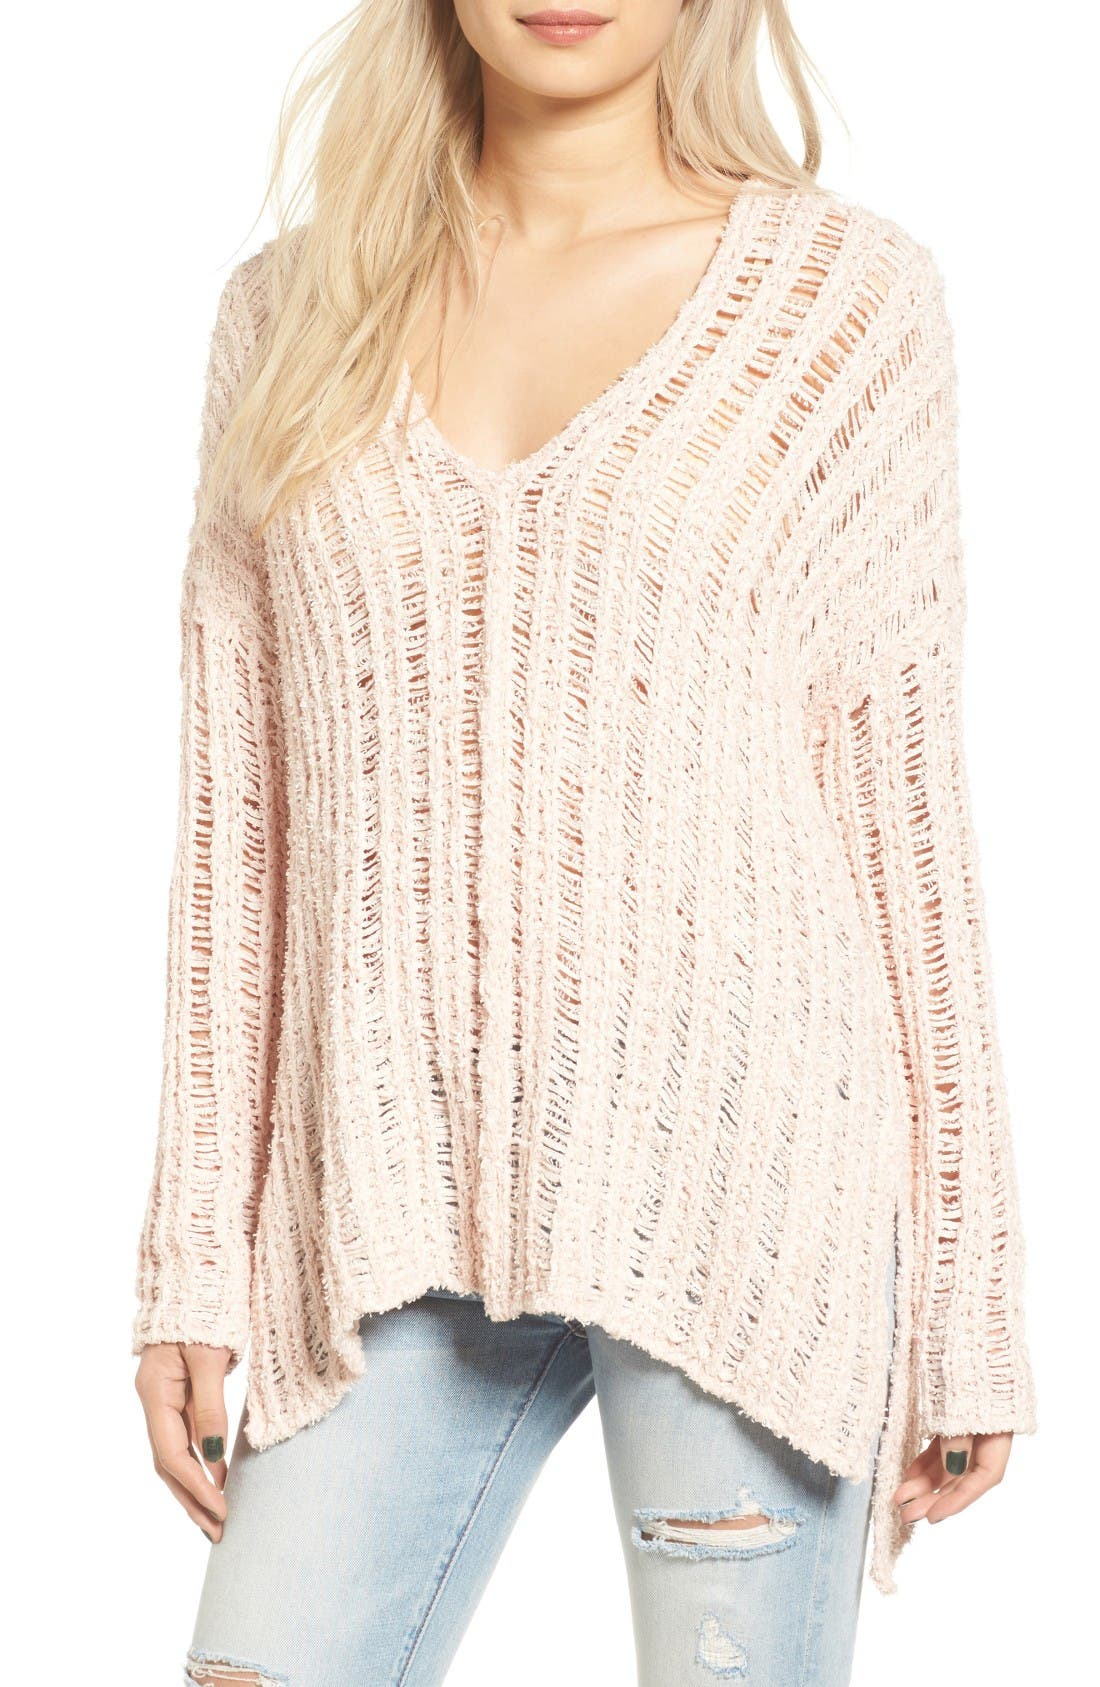 Main Image - ASTR the Label Open Knit Sweater